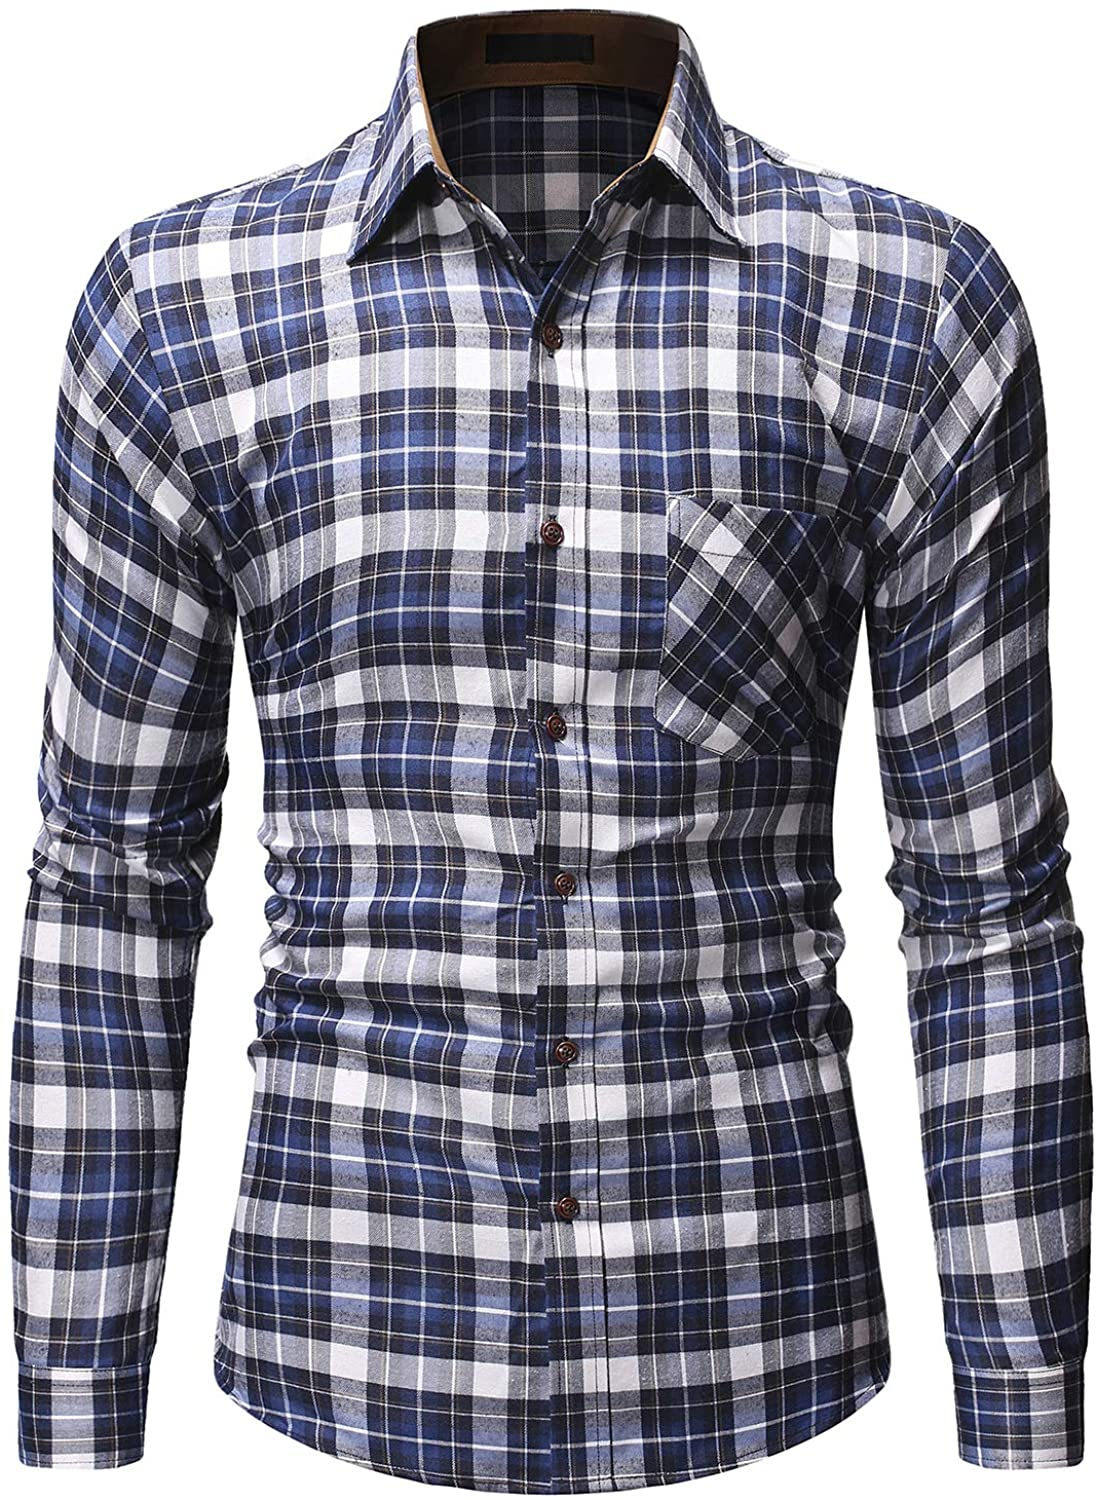 Shenglila Mens Plaid Long Sleeve Shirts Slim Fit Checkered Button Down Dress Shirt